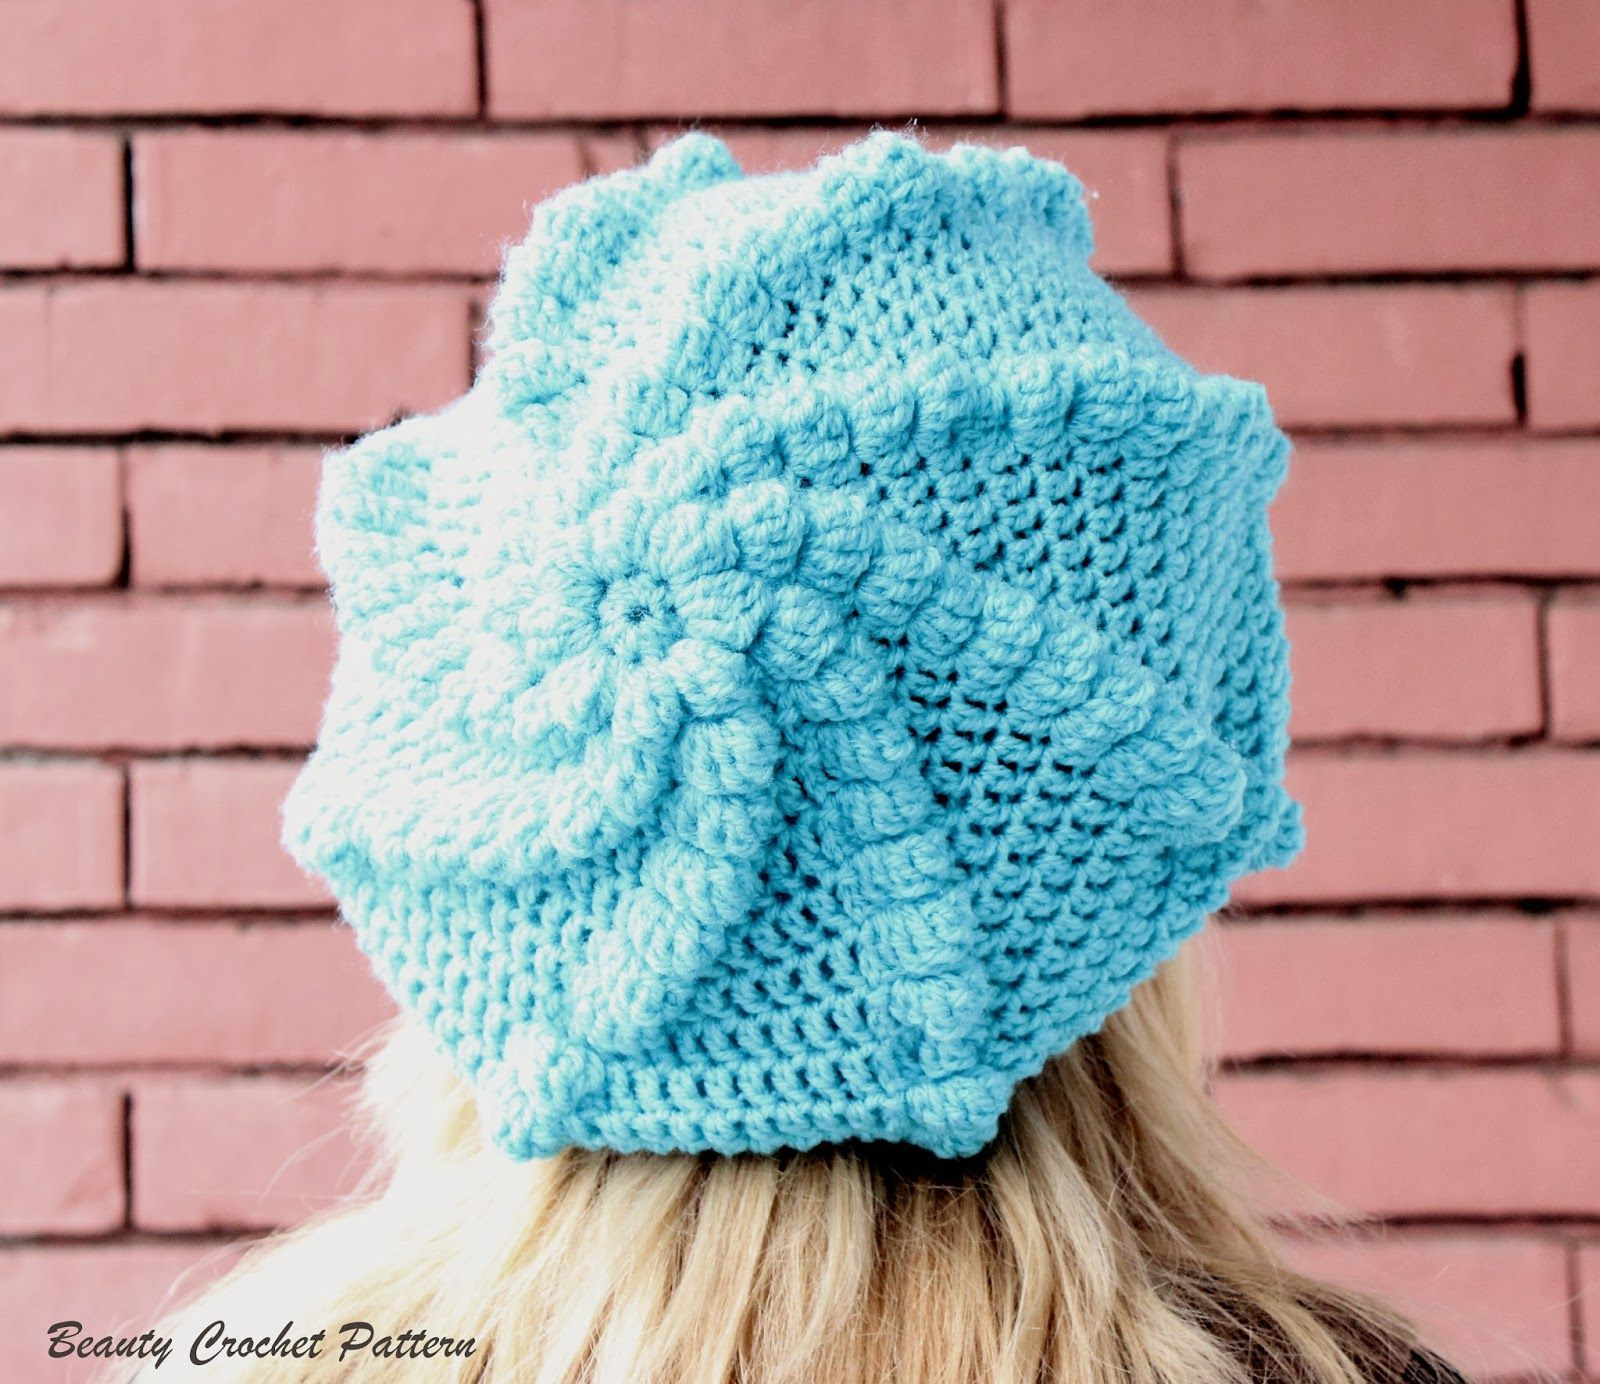 Beauty Crochet Pattern: Crochet Slouch Bubble Beret Pattern ...